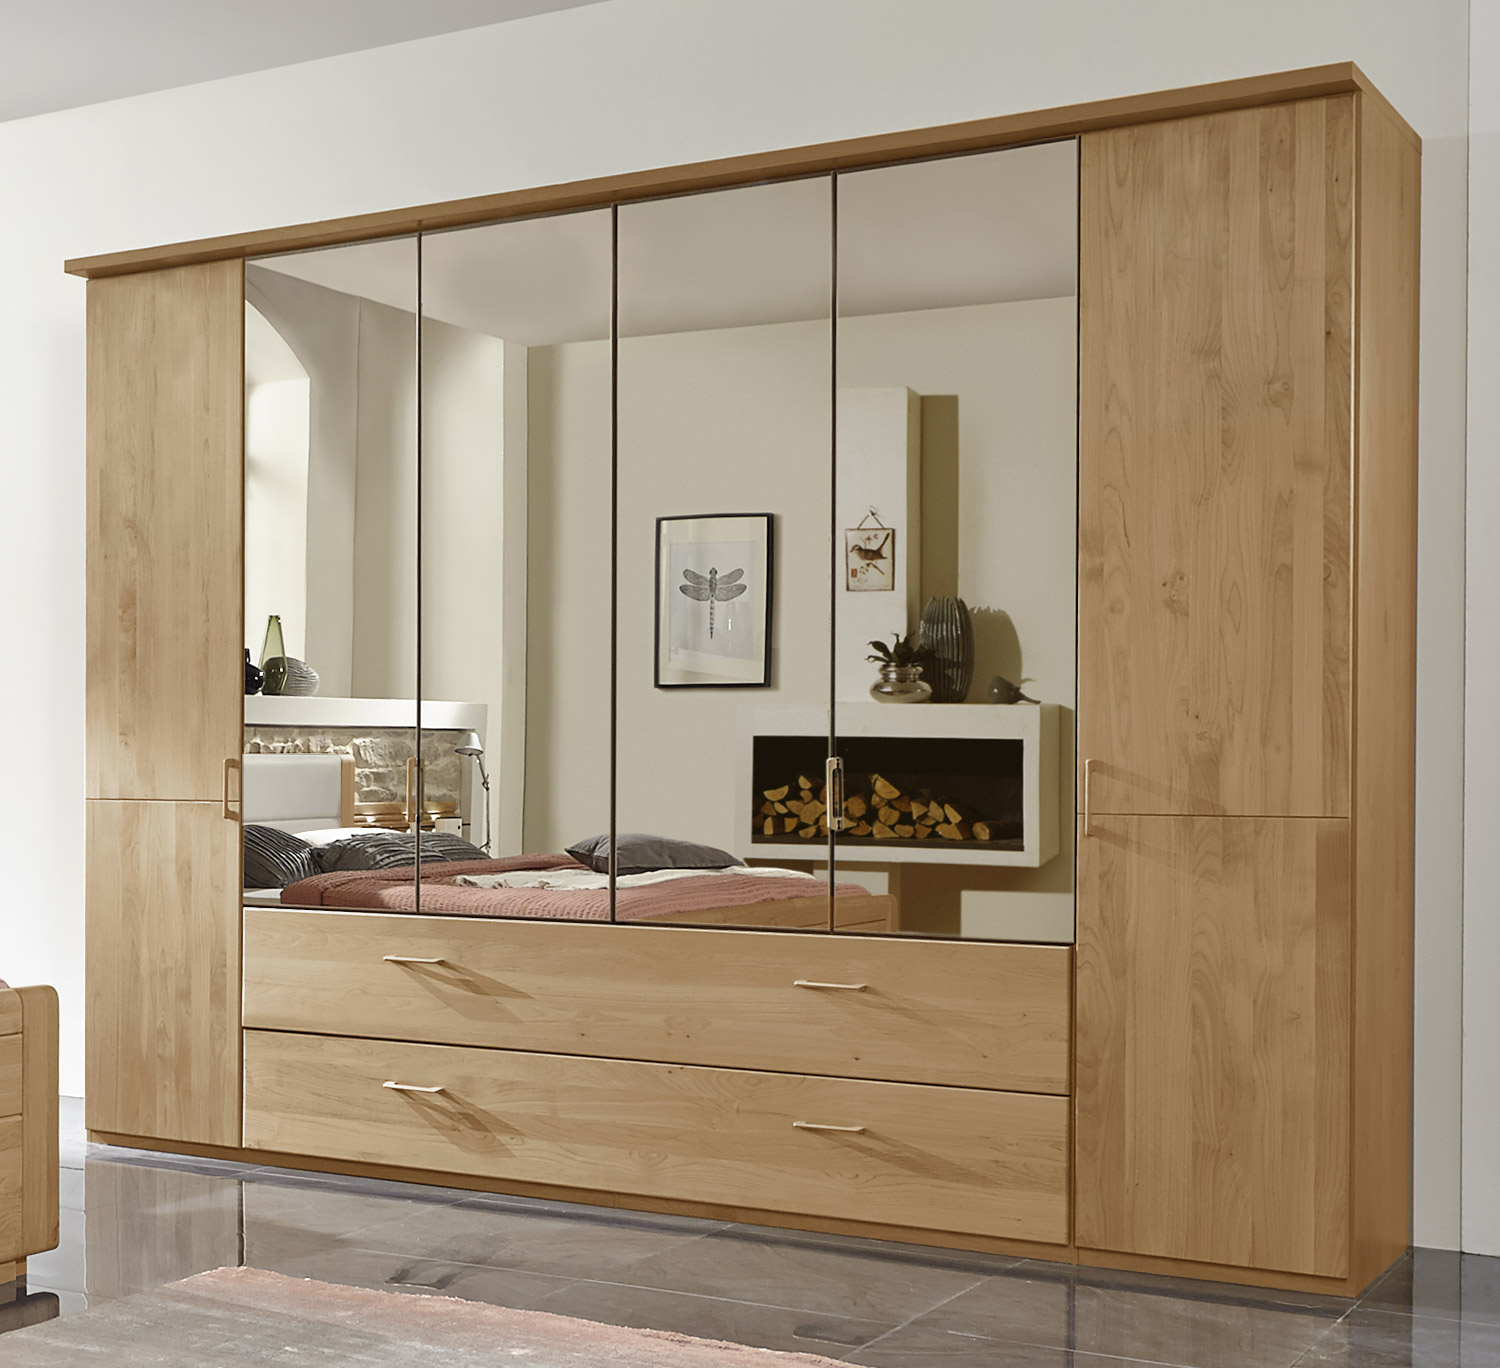 kleiderschrank mit schubladen spiegel und faltt ren narita. Black Bedroom Furniture Sets. Home Design Ideas